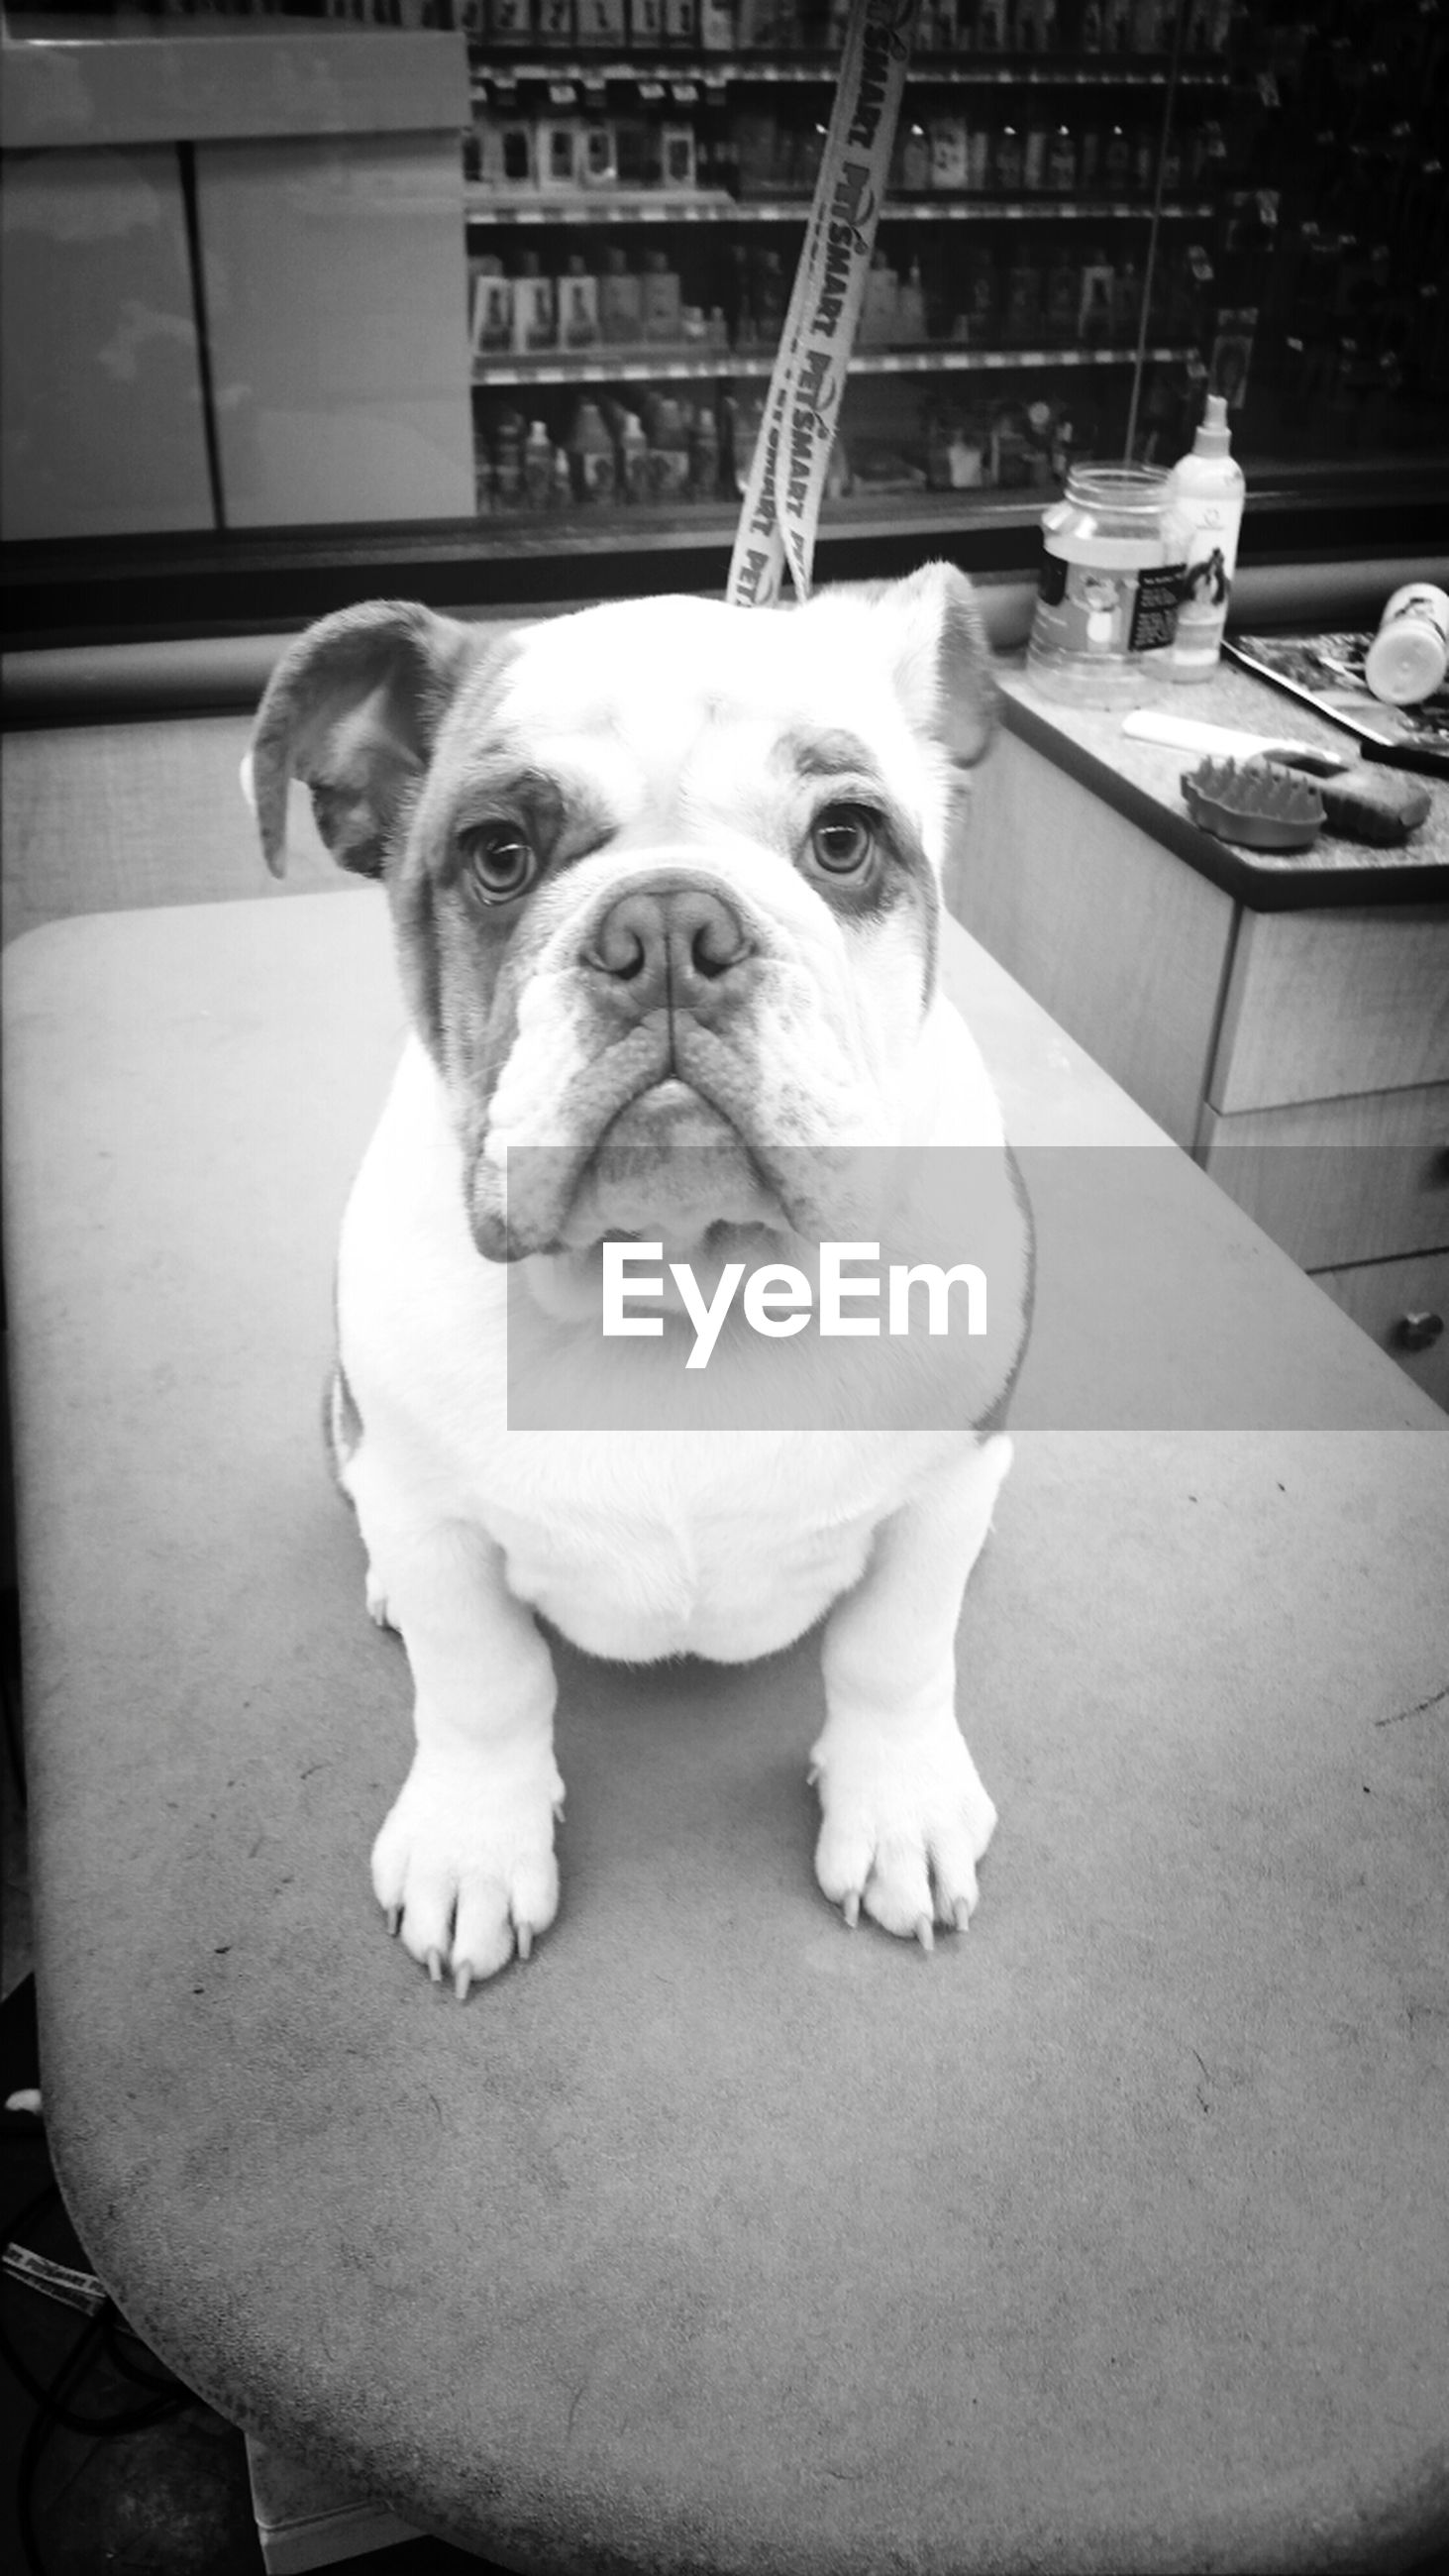 dog, pets, domestic animals, animal themes, one animal, mammal, looking at camera, portrait, indoors, sitting, relaxation, high angle view, full length, pet collar, flooring, no people, puppy, zoology, cute, day